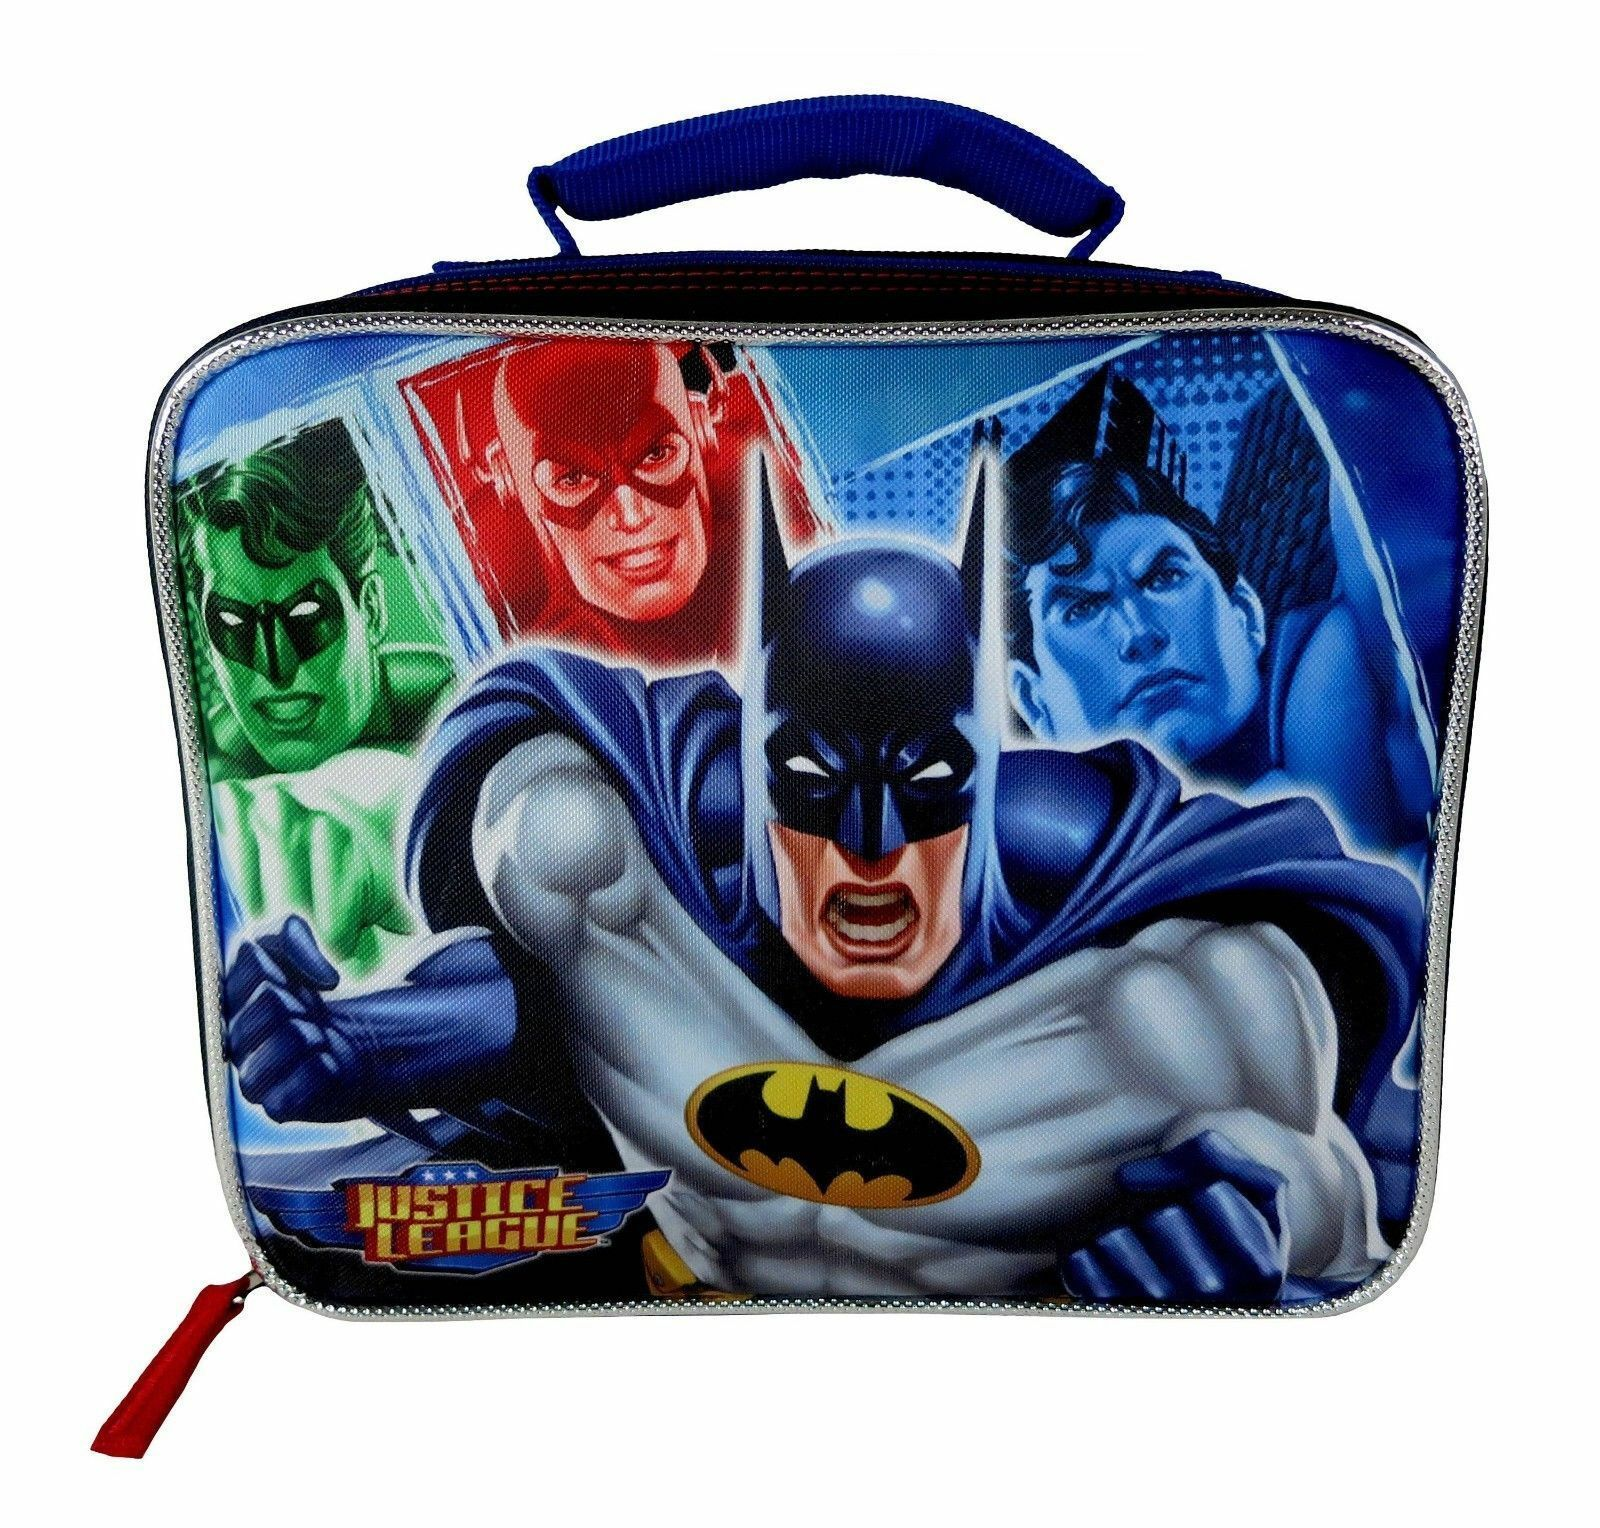 NEW Justice League Batman Dc Comics Boys Insulated Lunch Tote Box Kit